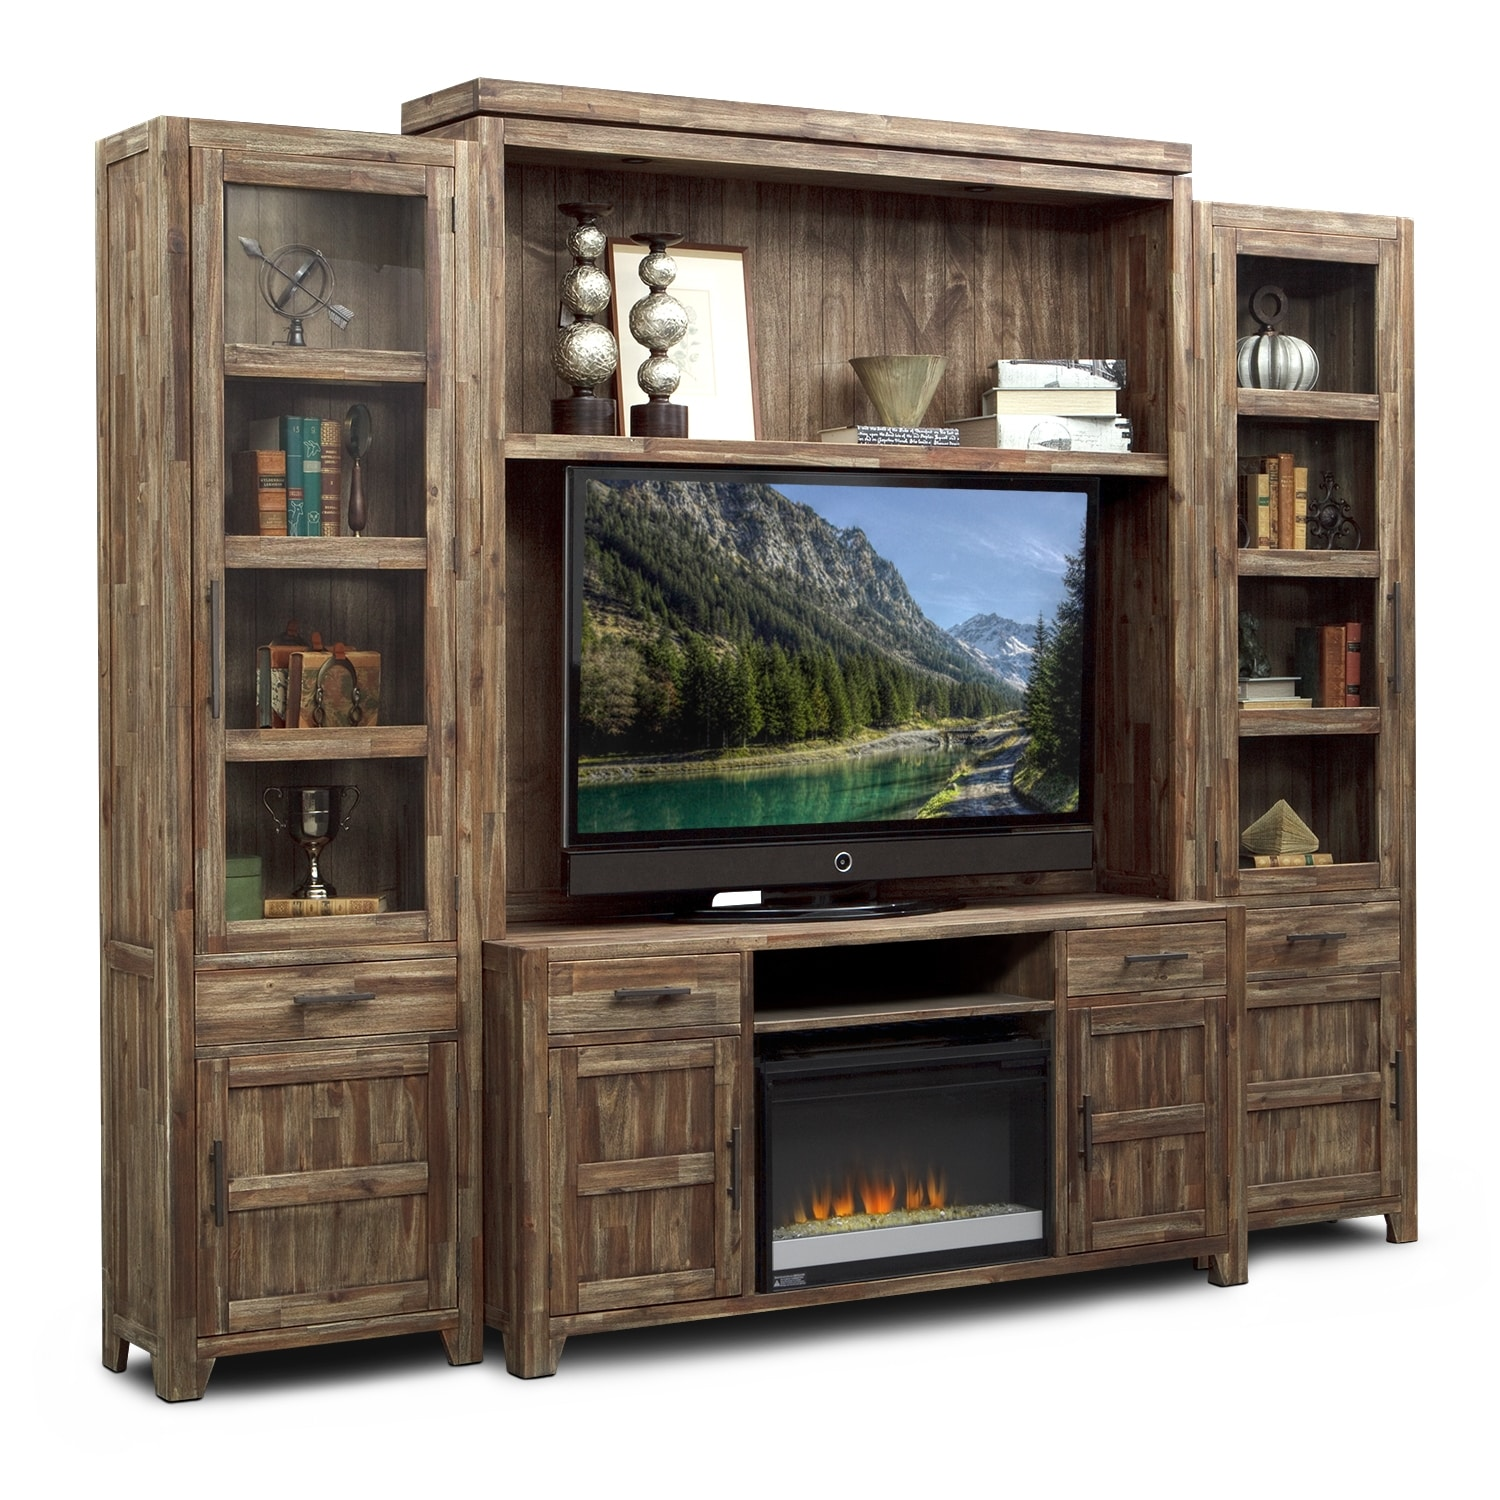 Entertainment Furniture - Brentwood 5 Pc. Entertainment Wall Unit with Contemporary Fireplace